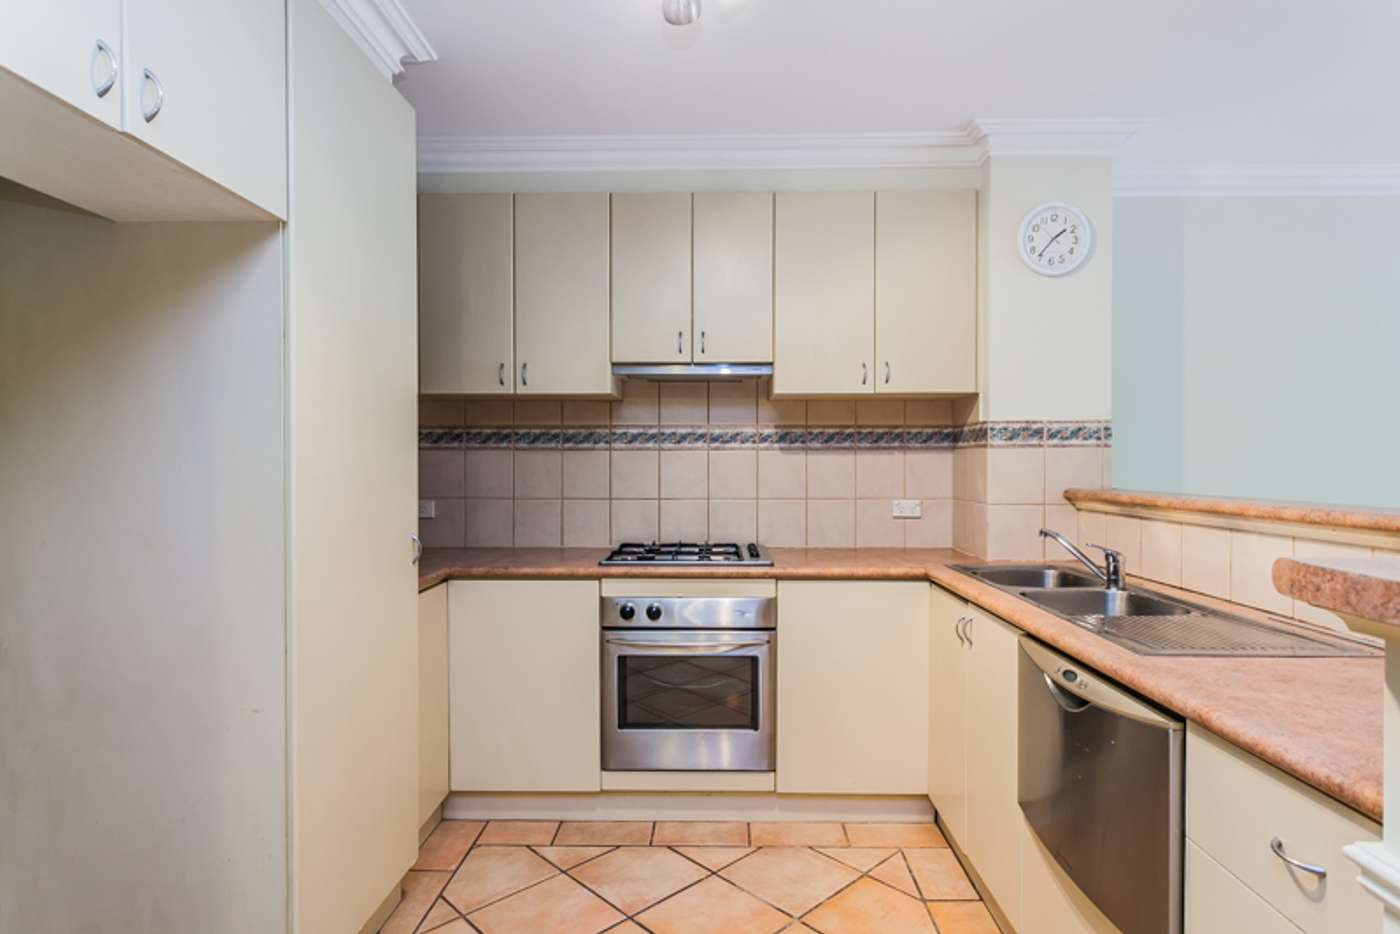 Sixth view of Homely apartment listing, 2/125 Wellington St, East Perth WA 6004